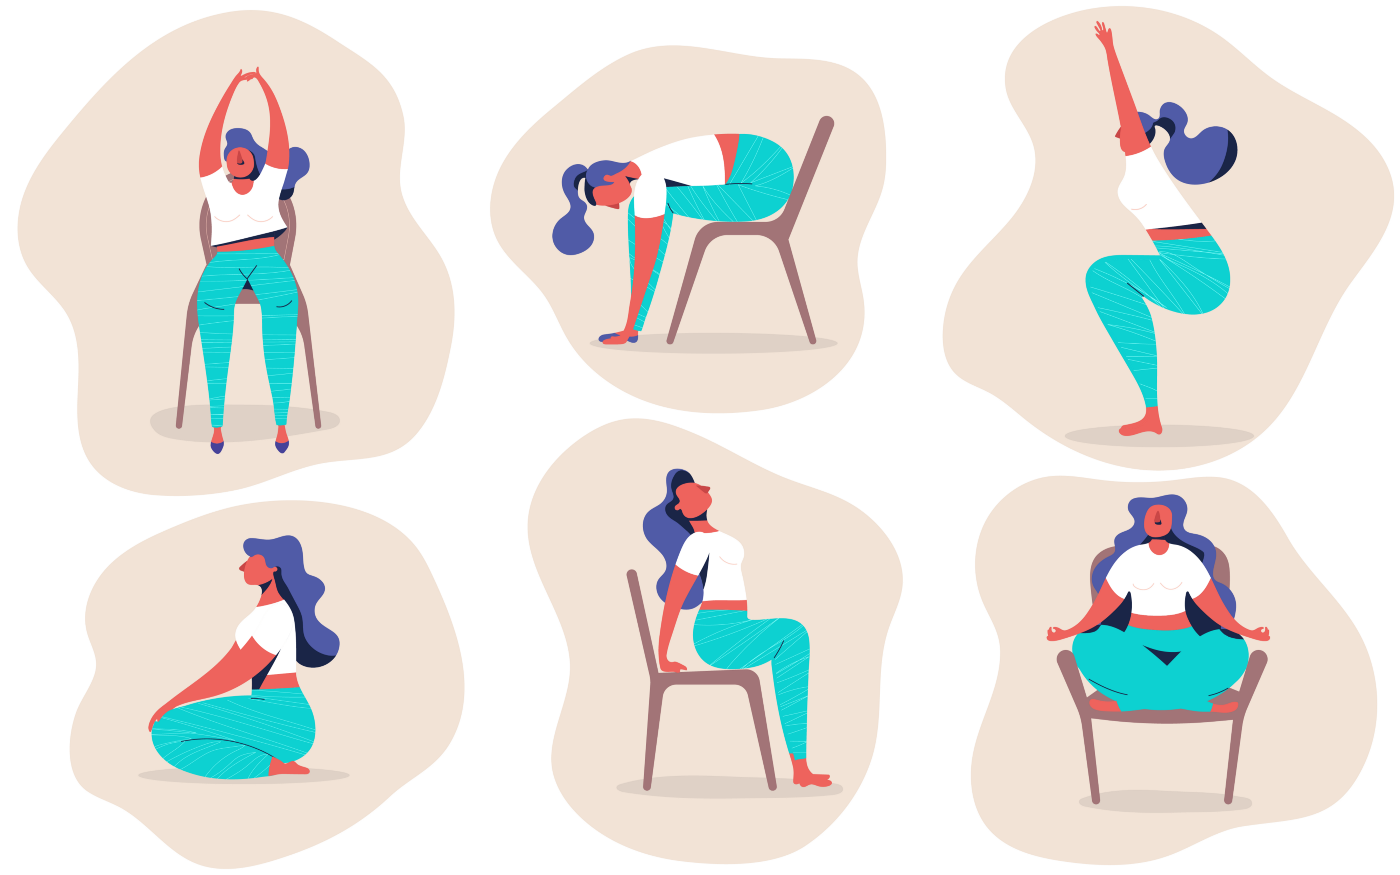 Illustrated images of a woman doing yoga poses either seated or in a chair